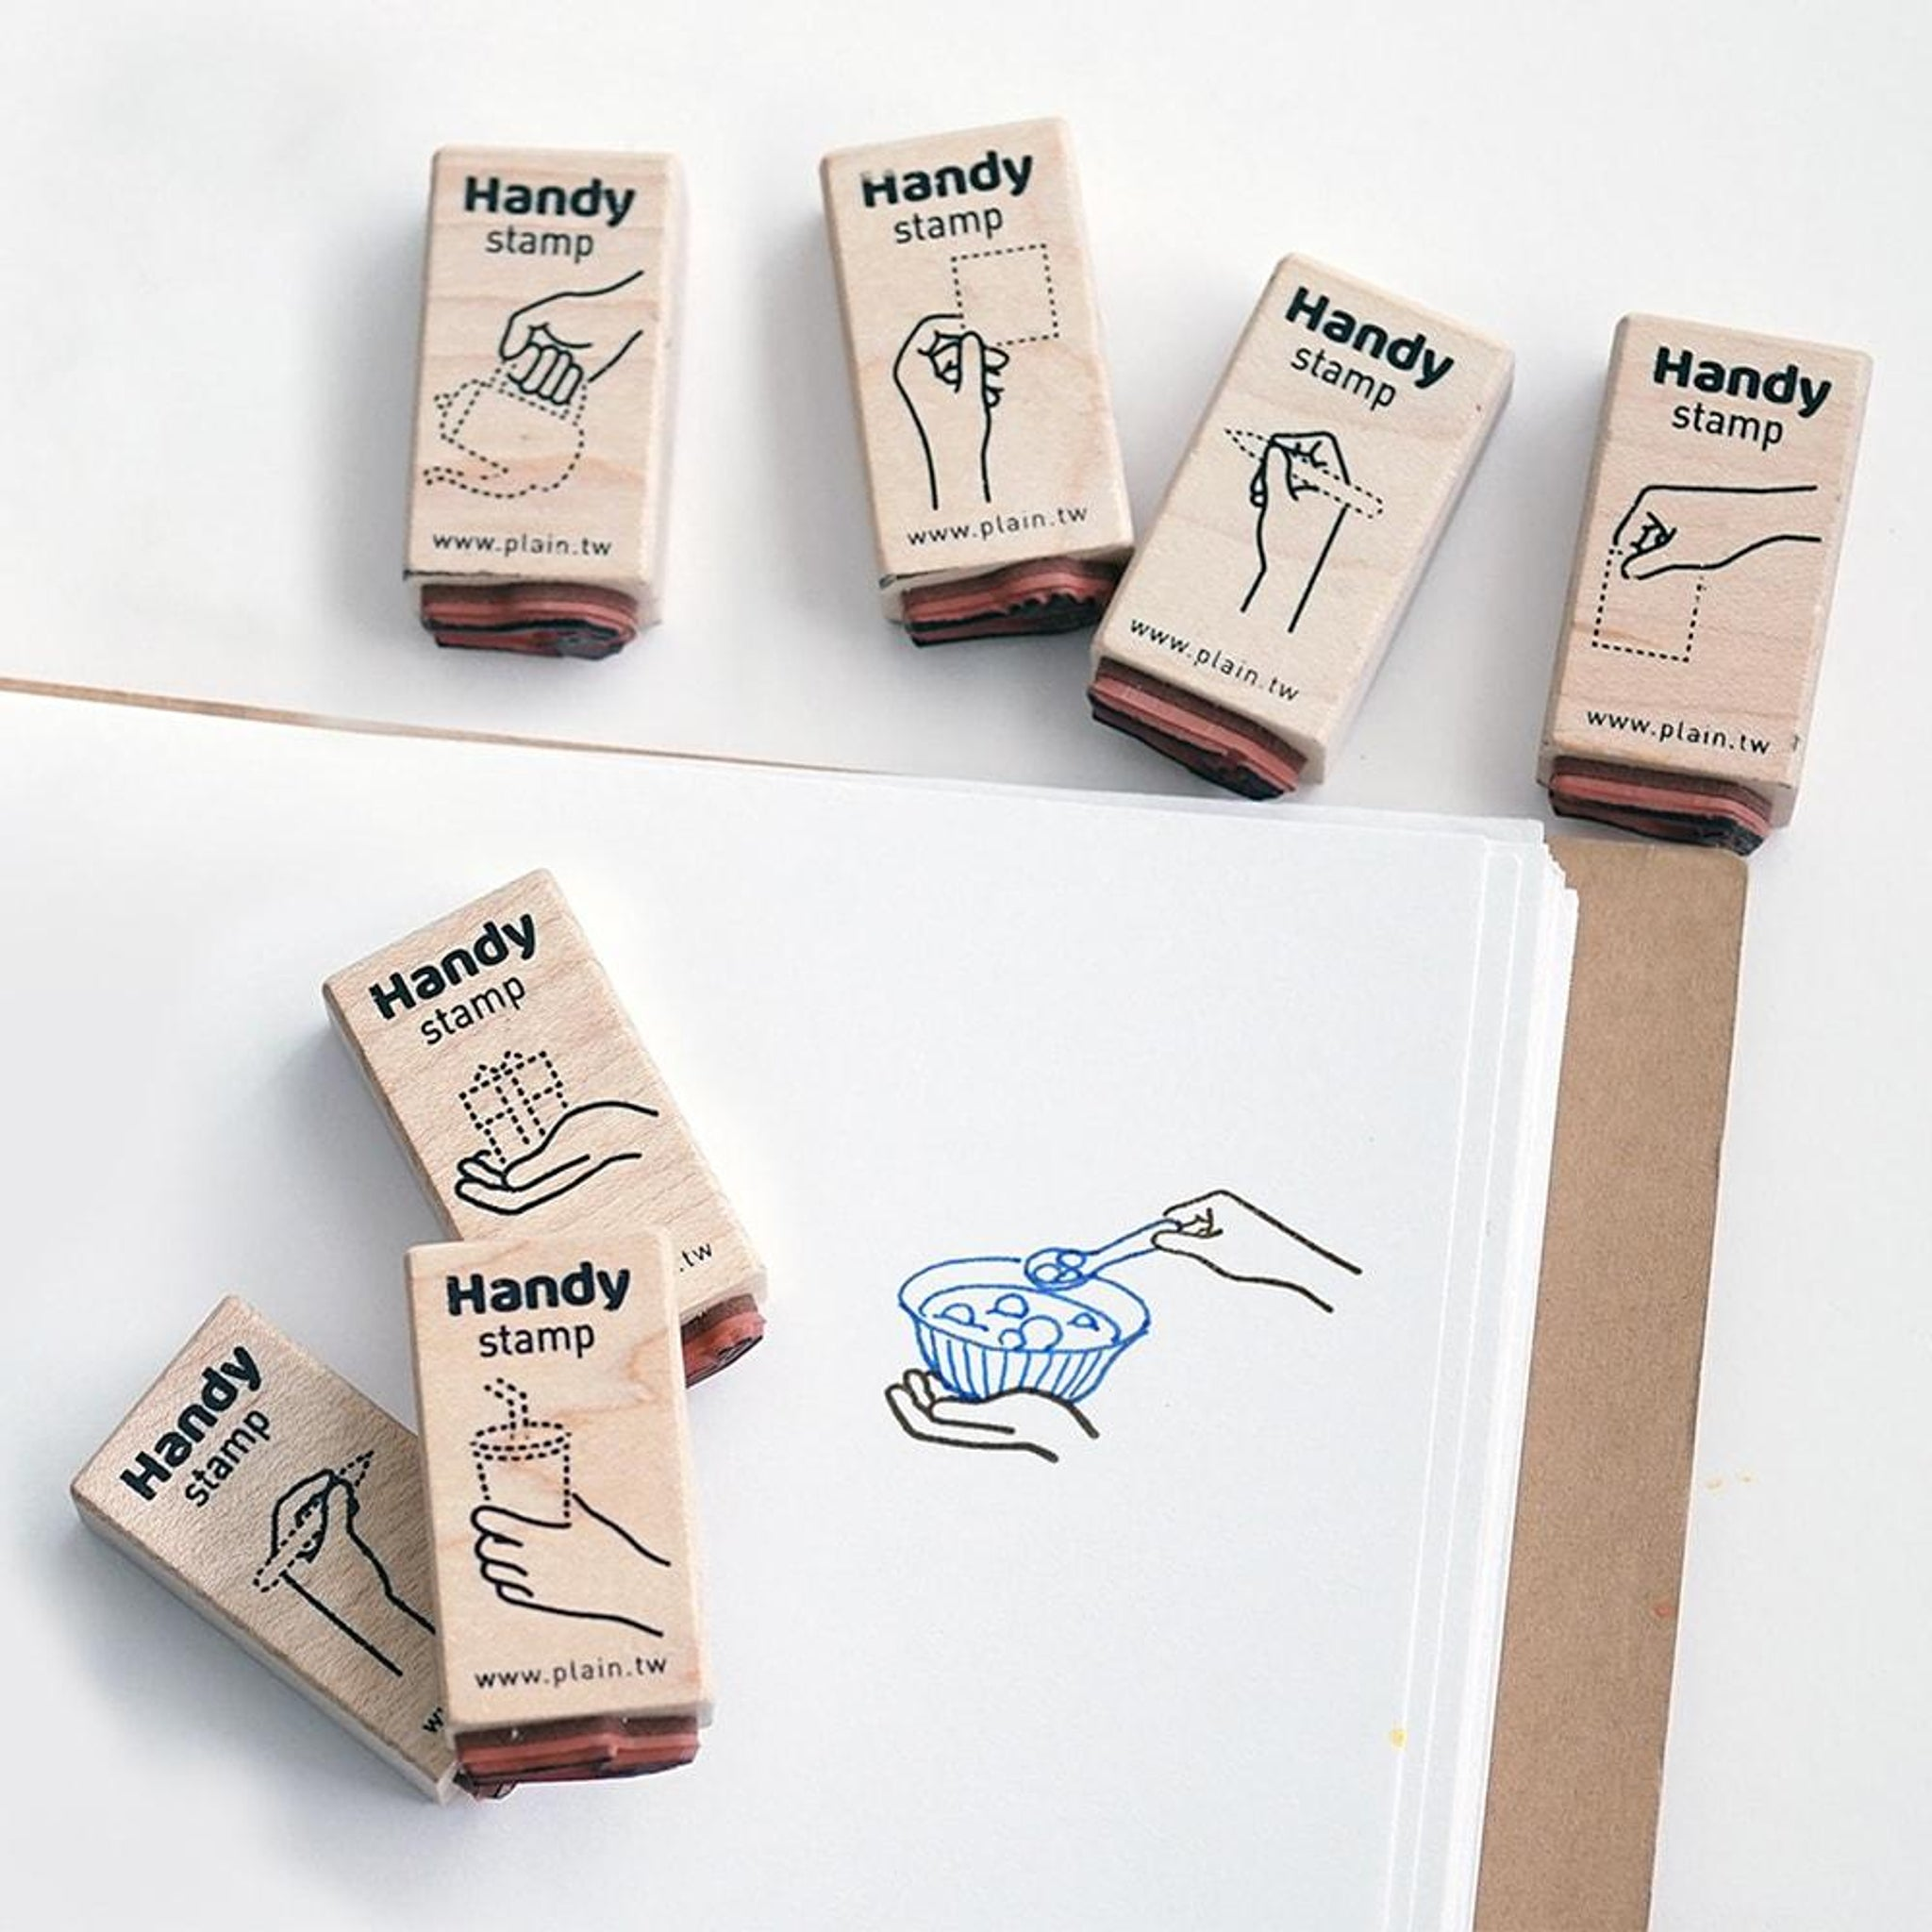 Plain Stationery Handy Stamp - A